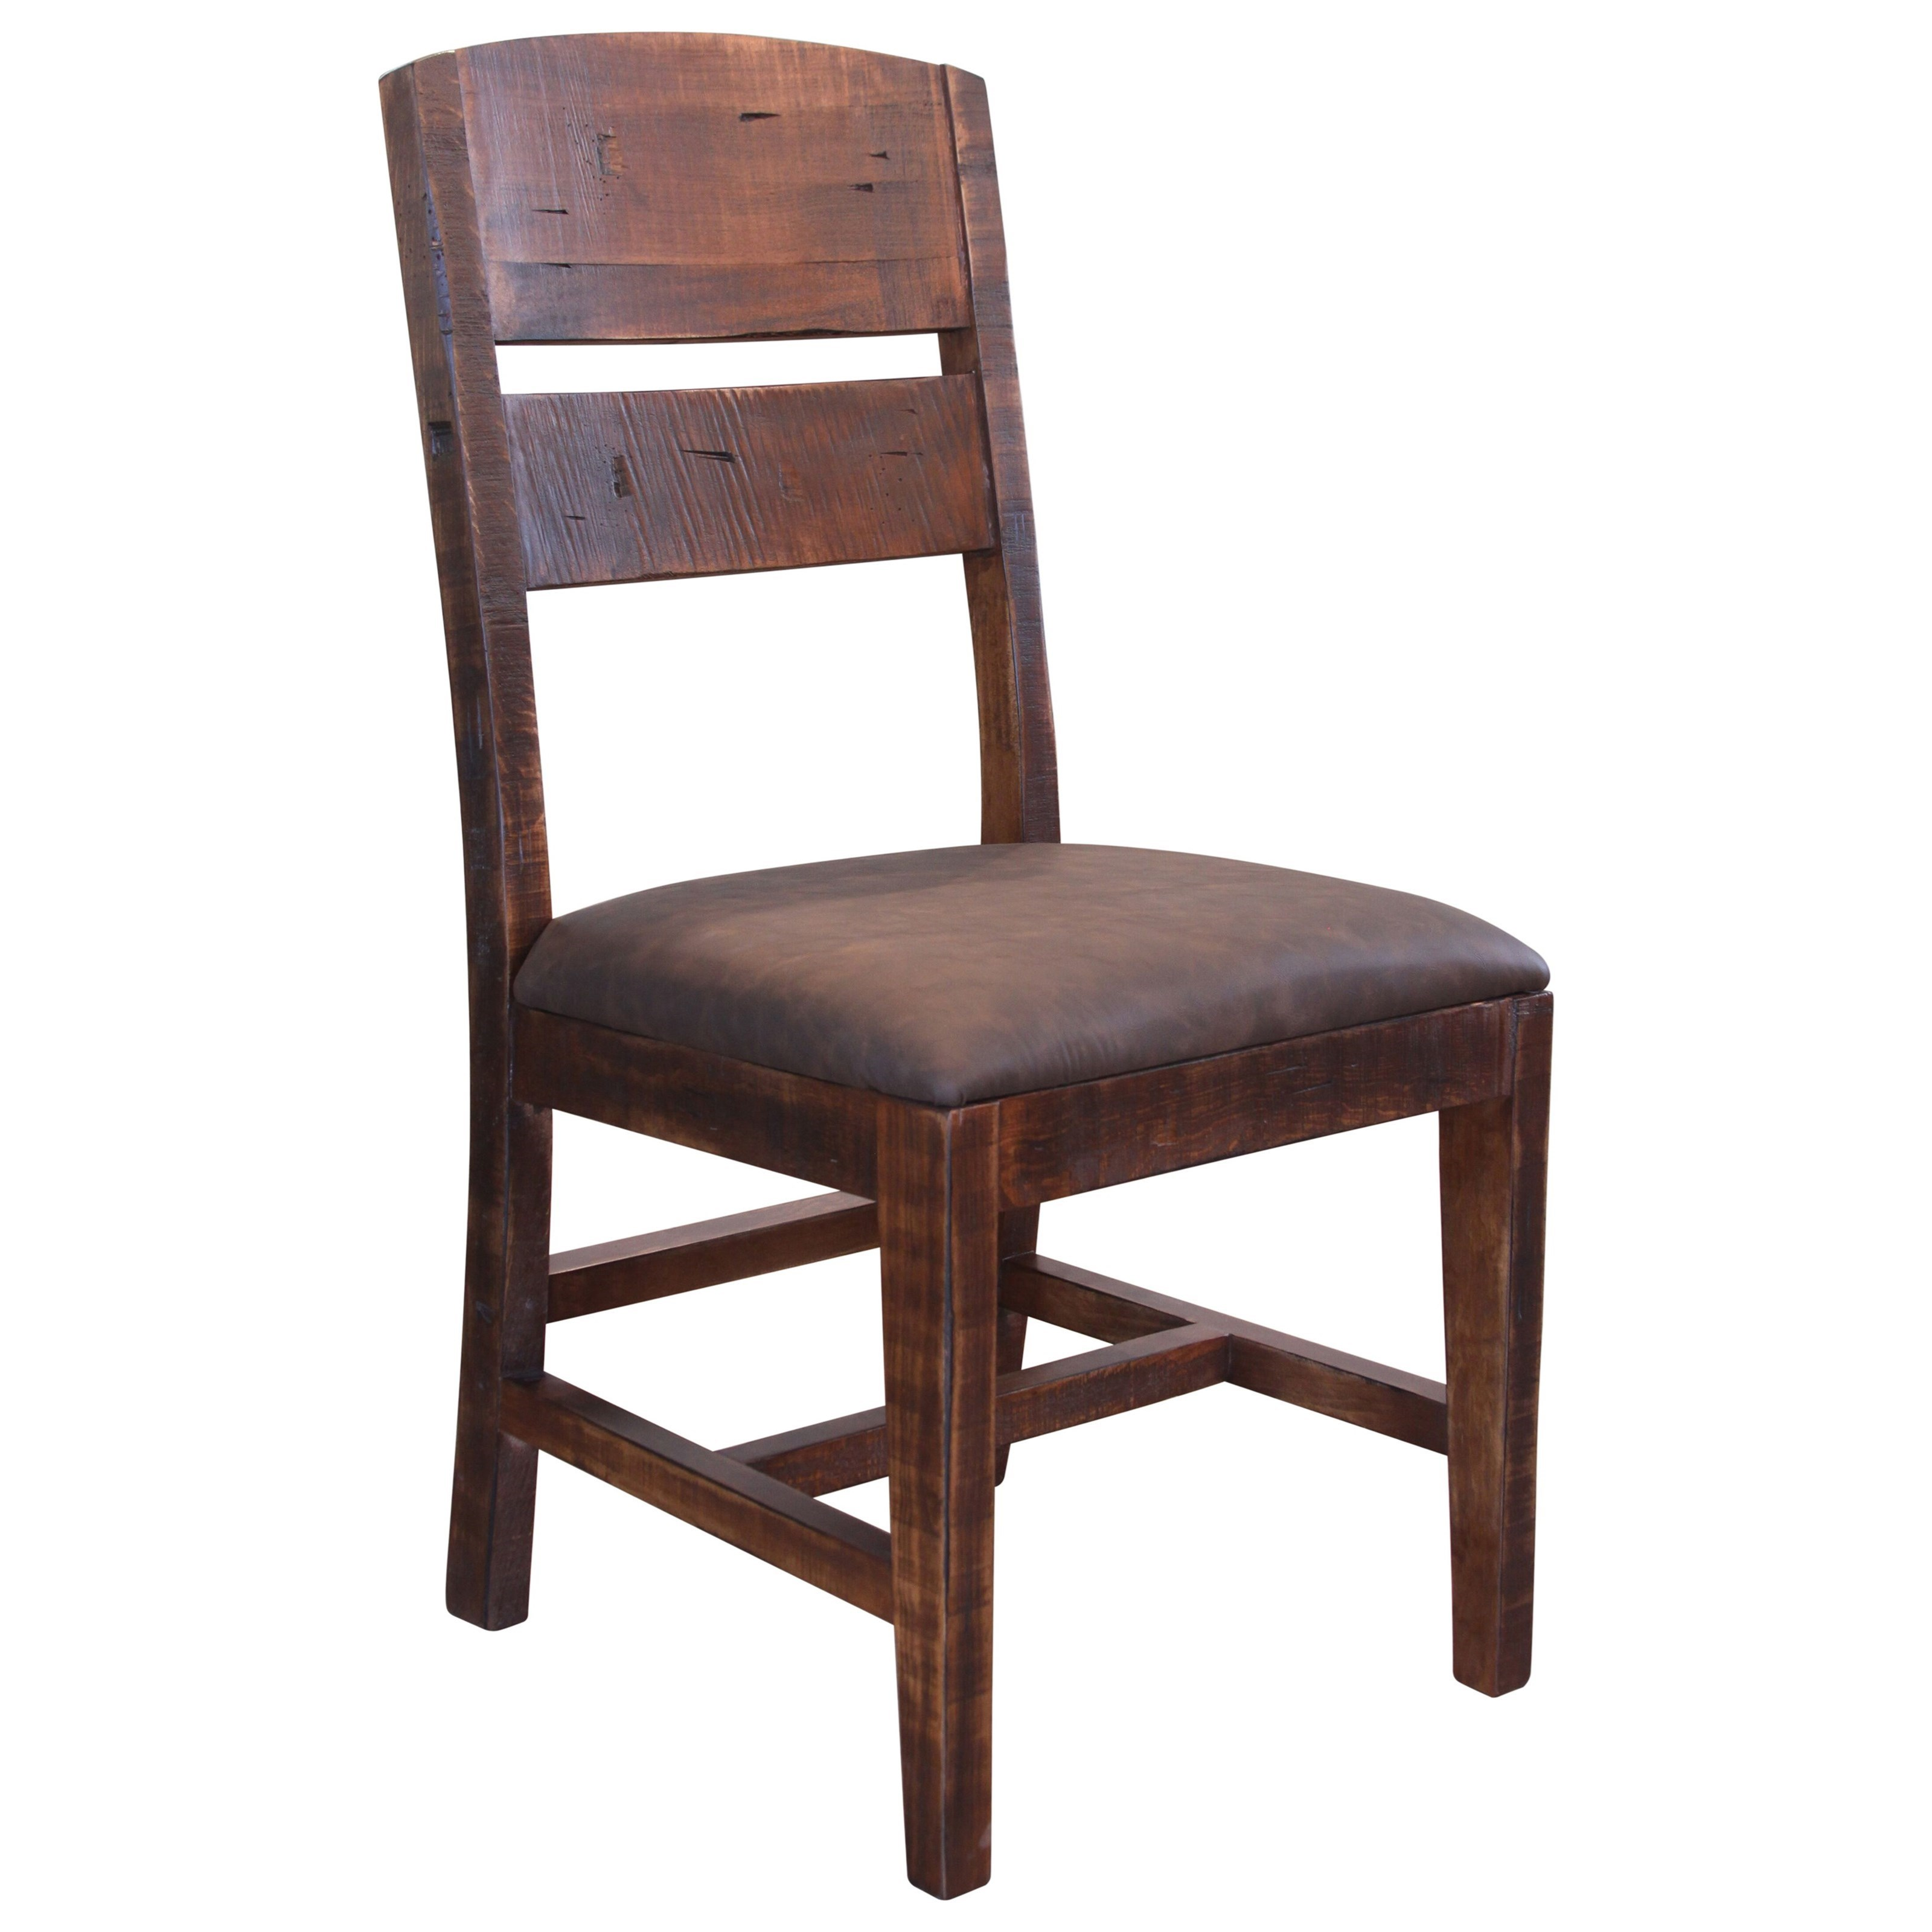 Chair with Solid Wood Back